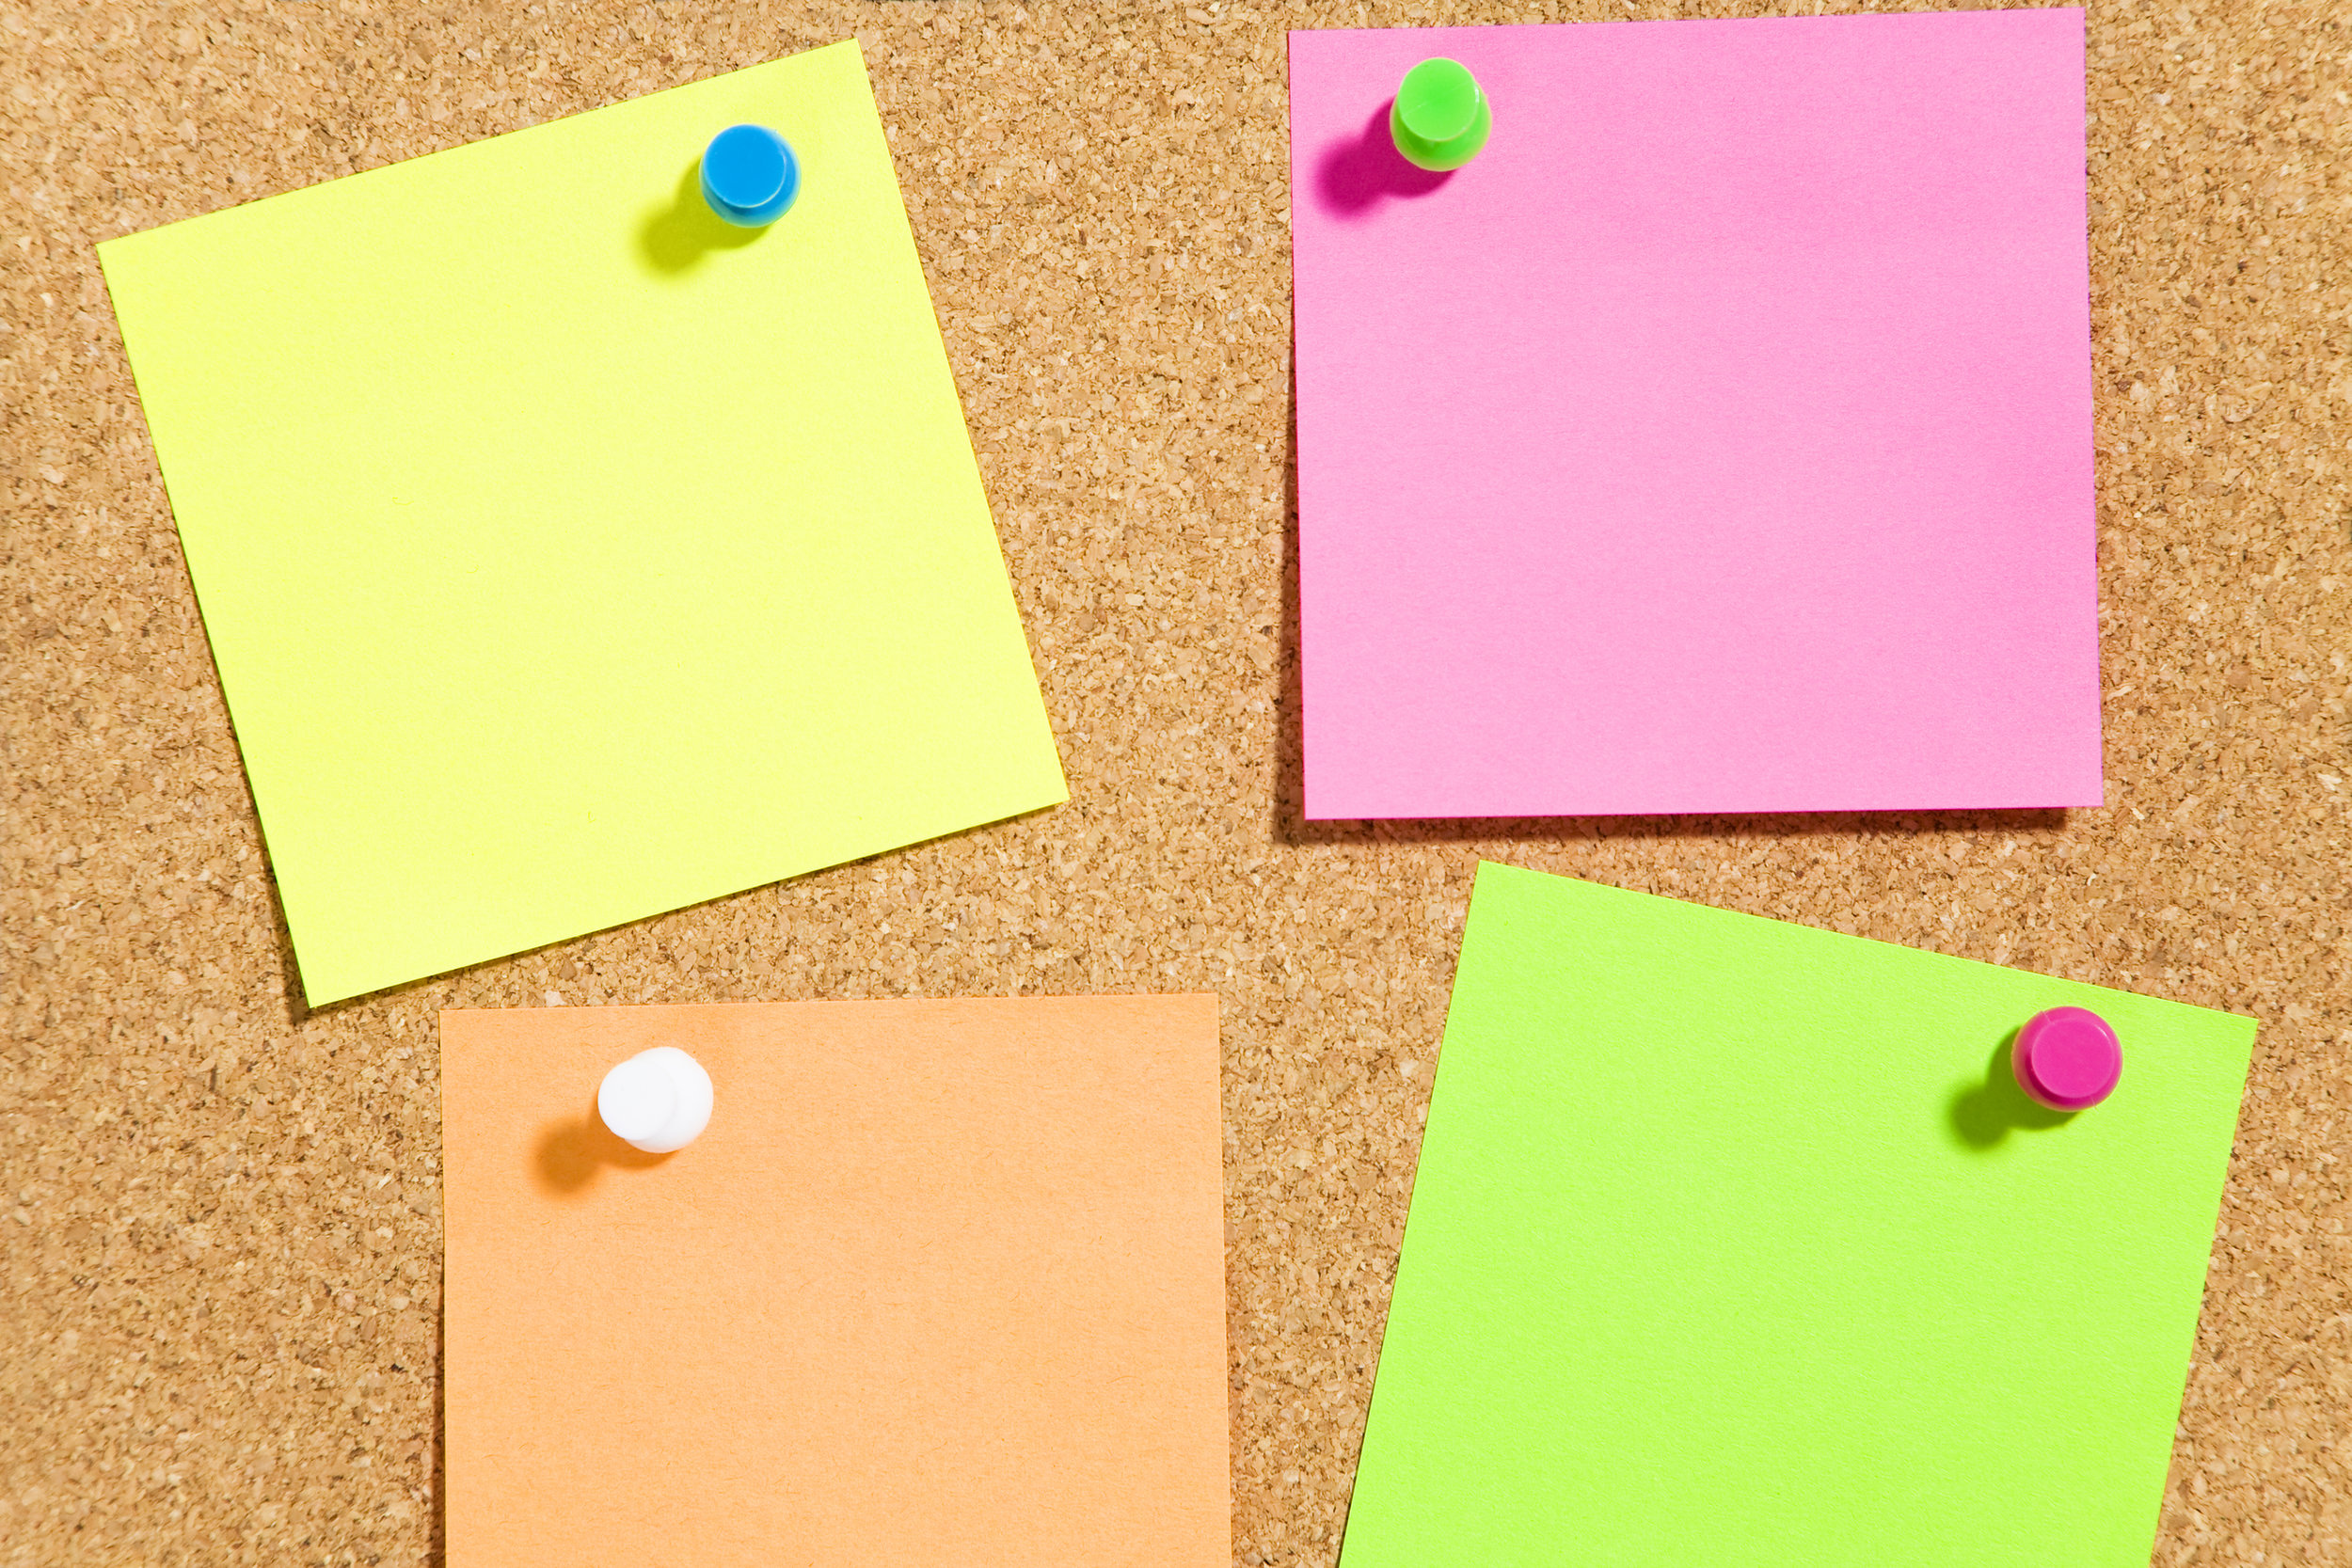 Keep black Post-its or other cards where you can see them to remind yourself to write positive notes home.